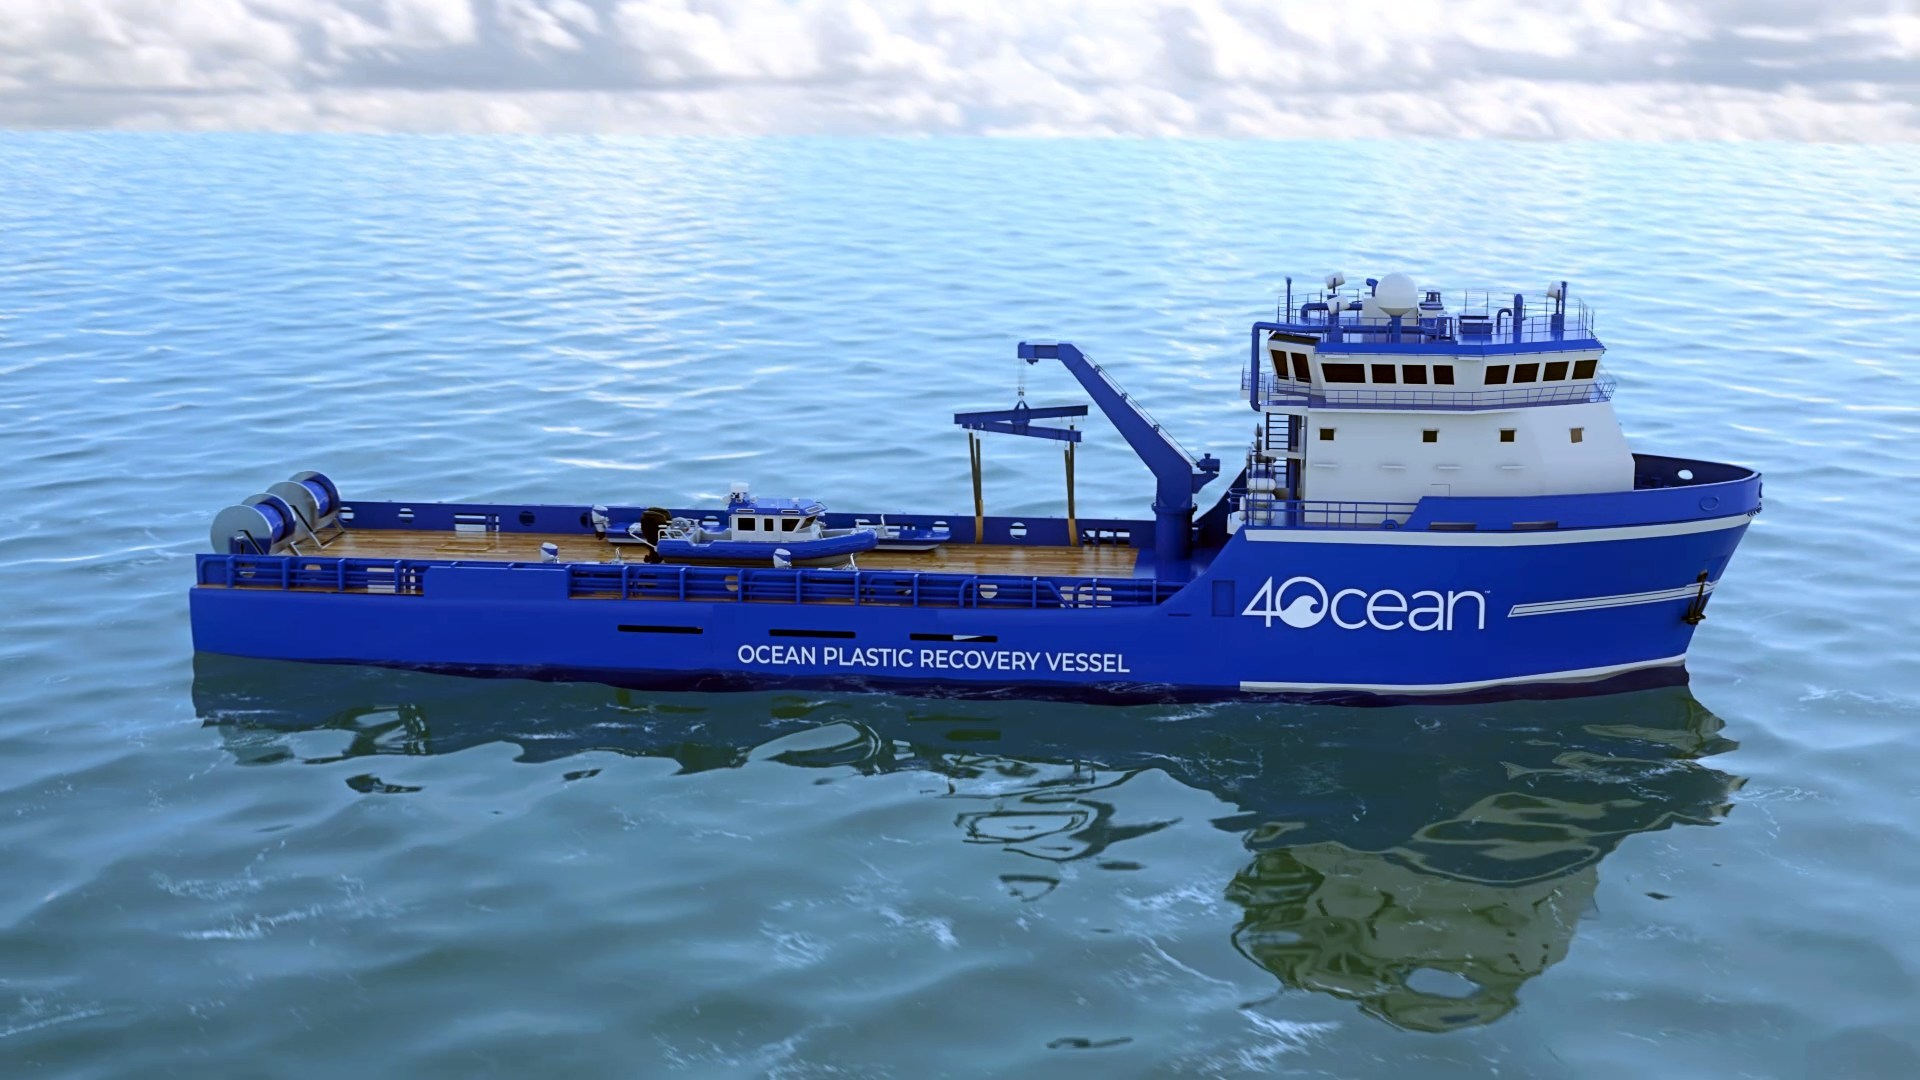 4ocean Unveils One-Of-A-Kind 135-Foot Ocean Plastic Recovery Vessel